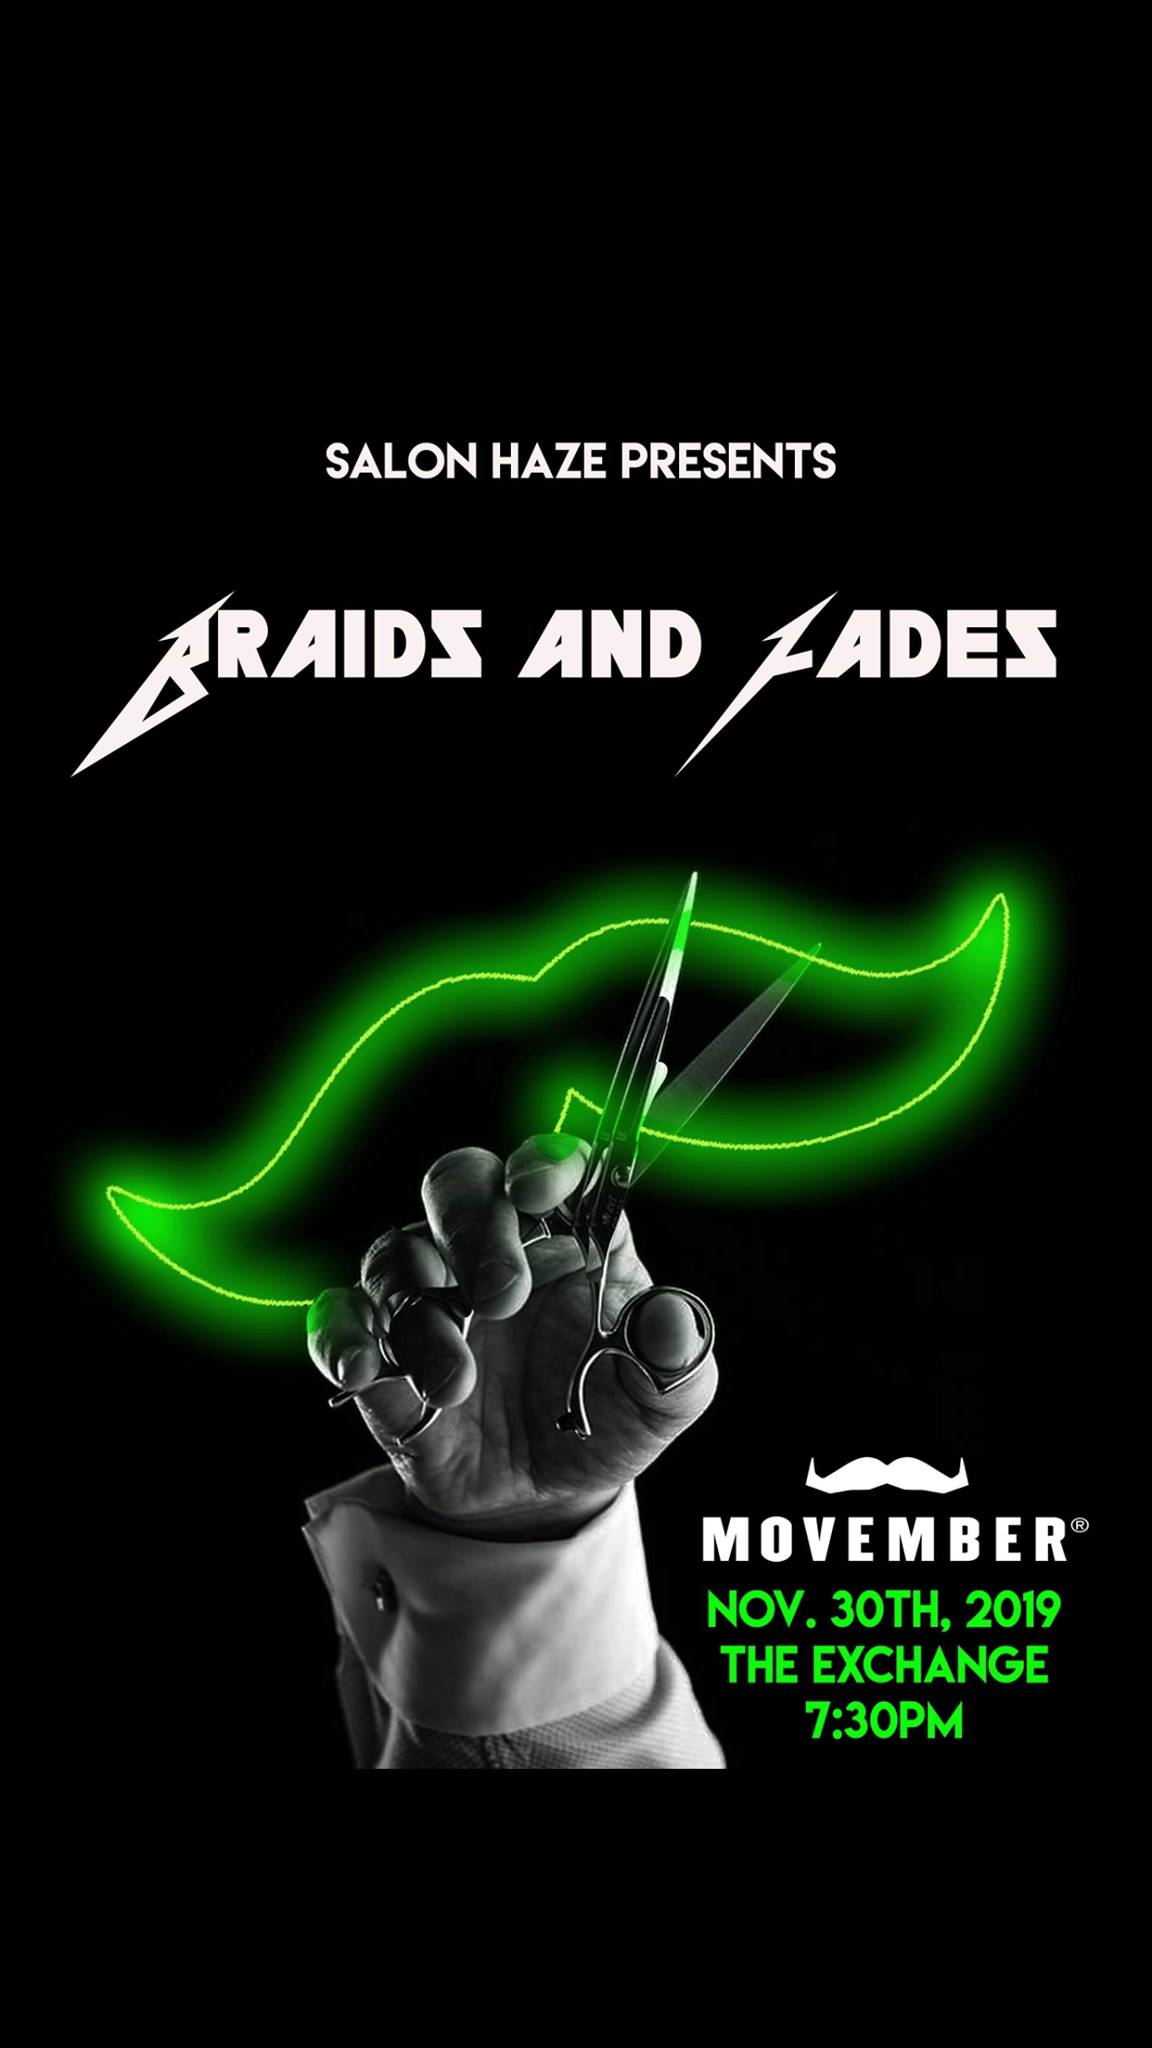 Salon Haze Presents Braids and Fades